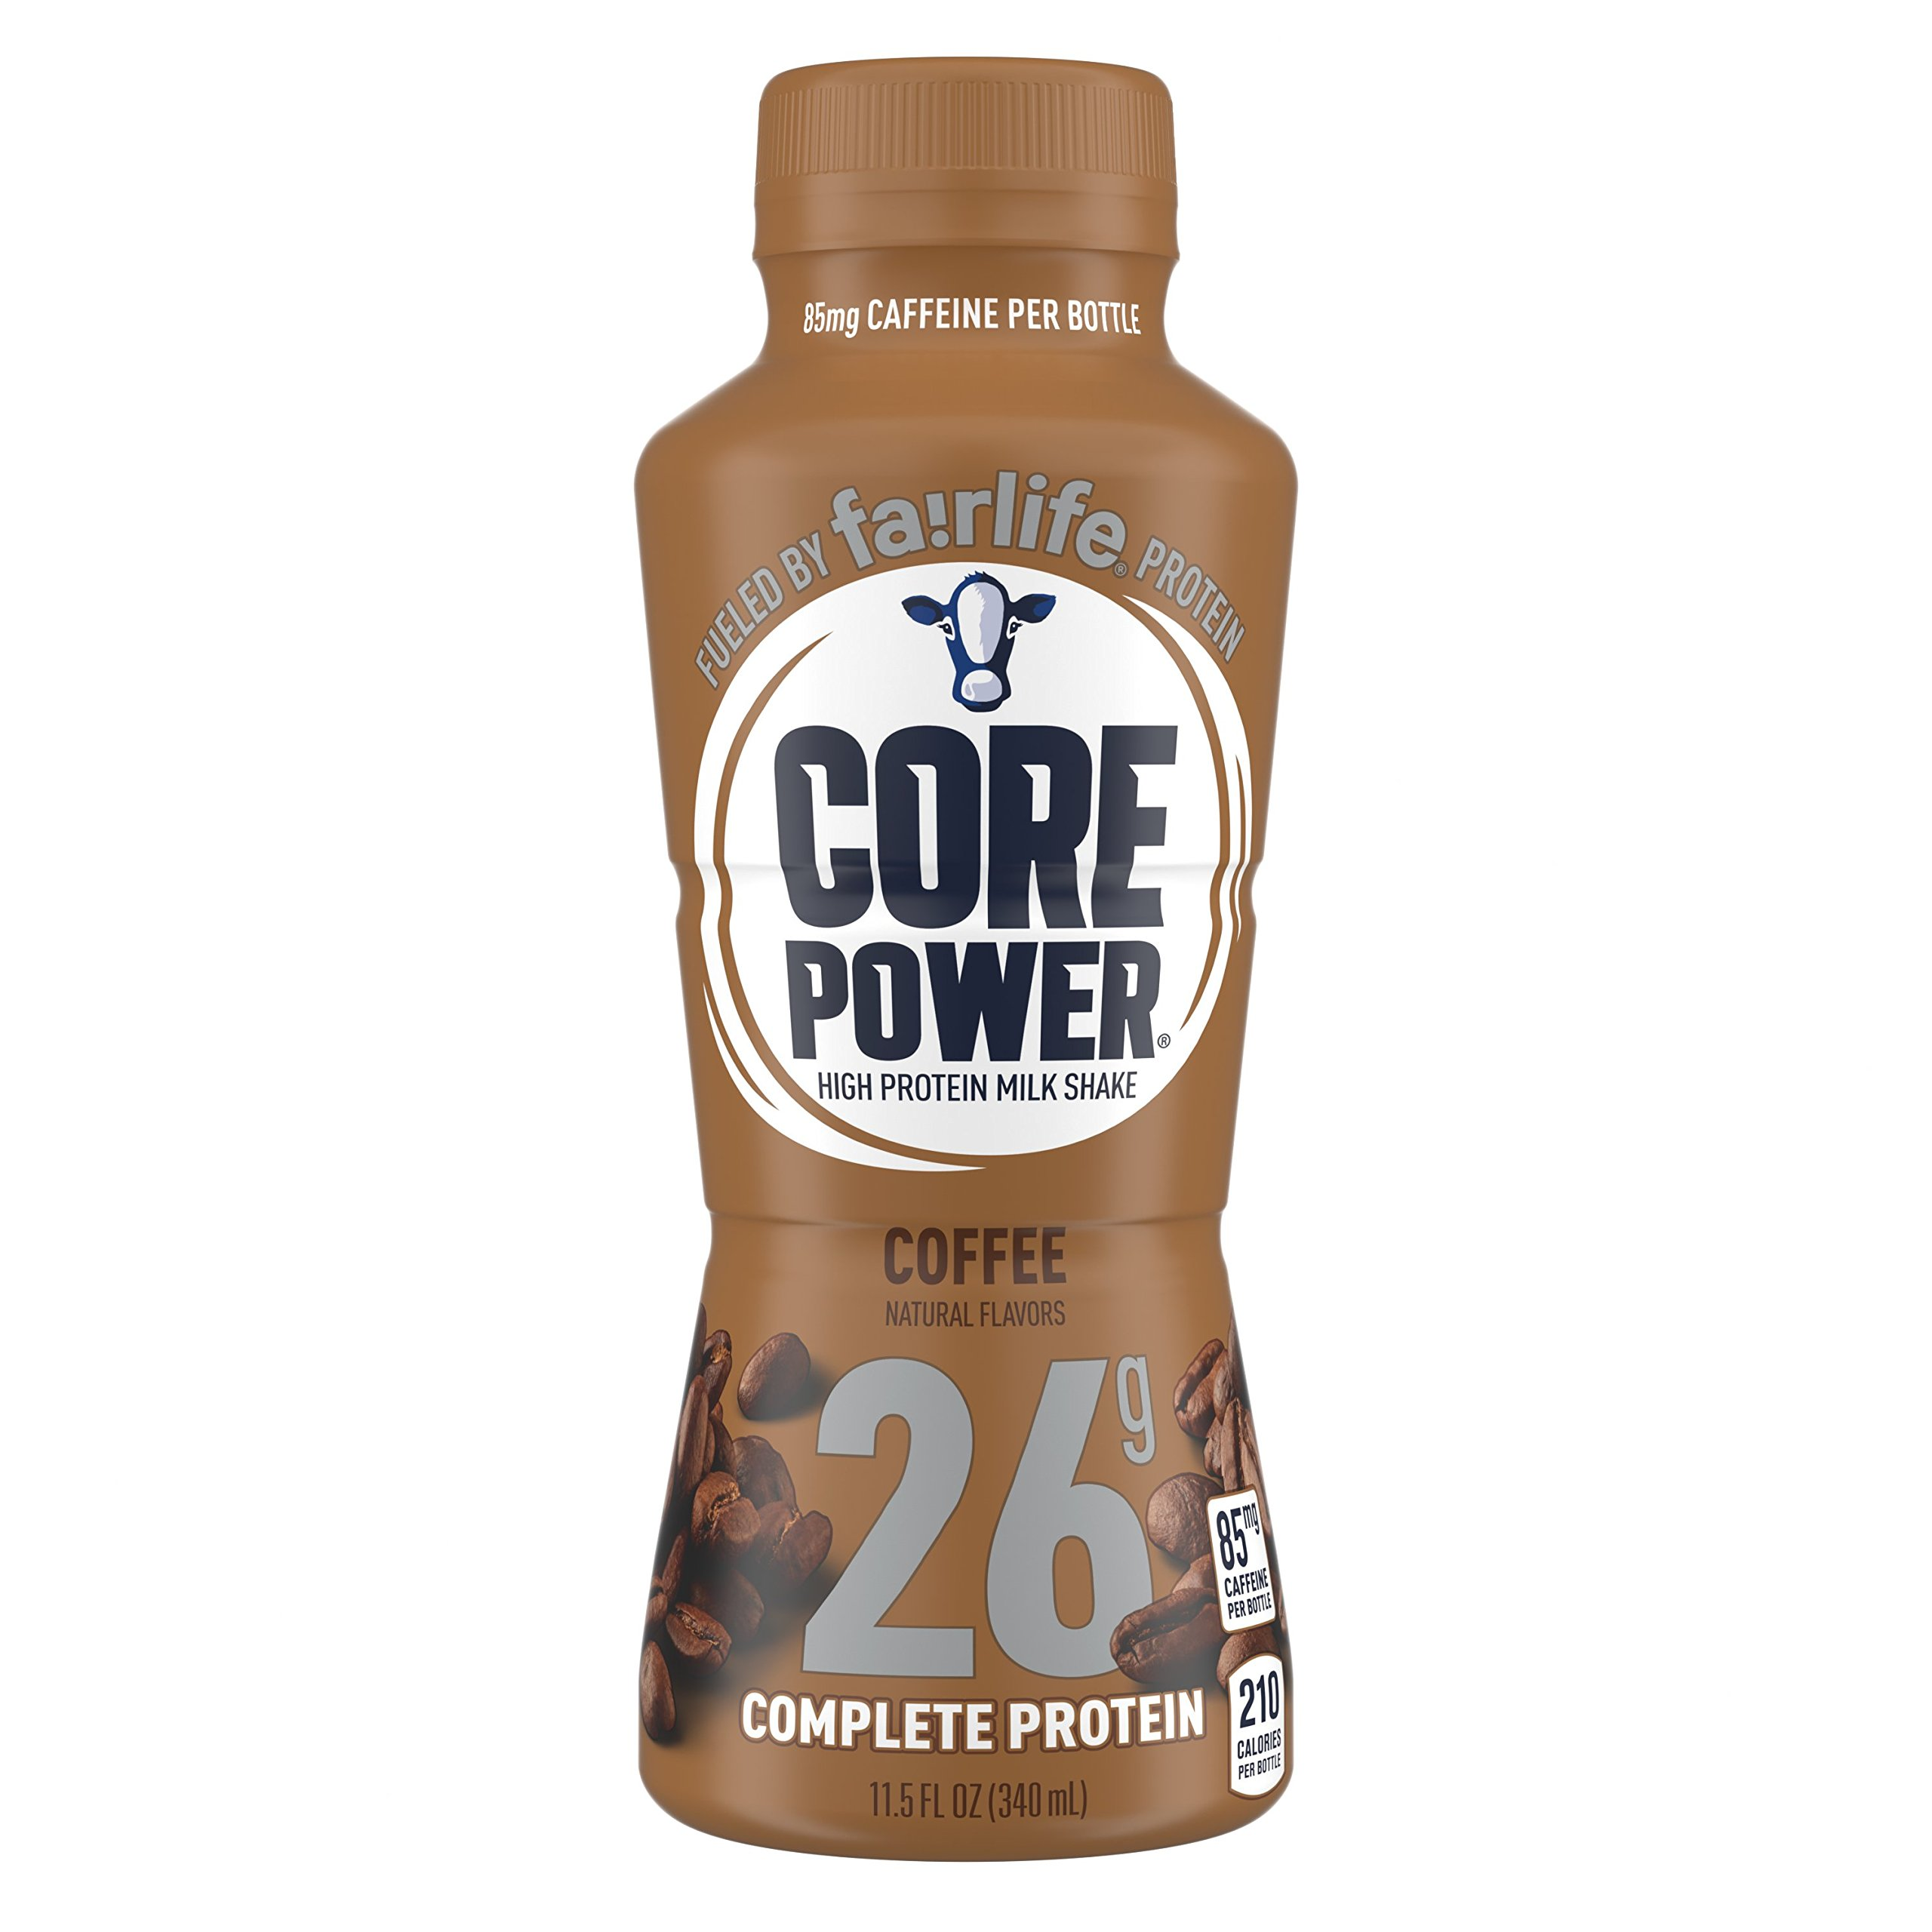 fairlife Core Power High Protein (26g) Milk Shake, Coffee, 85g Caffeine (Packaging May Vary), 11.5-ounce bottles, 12 Count